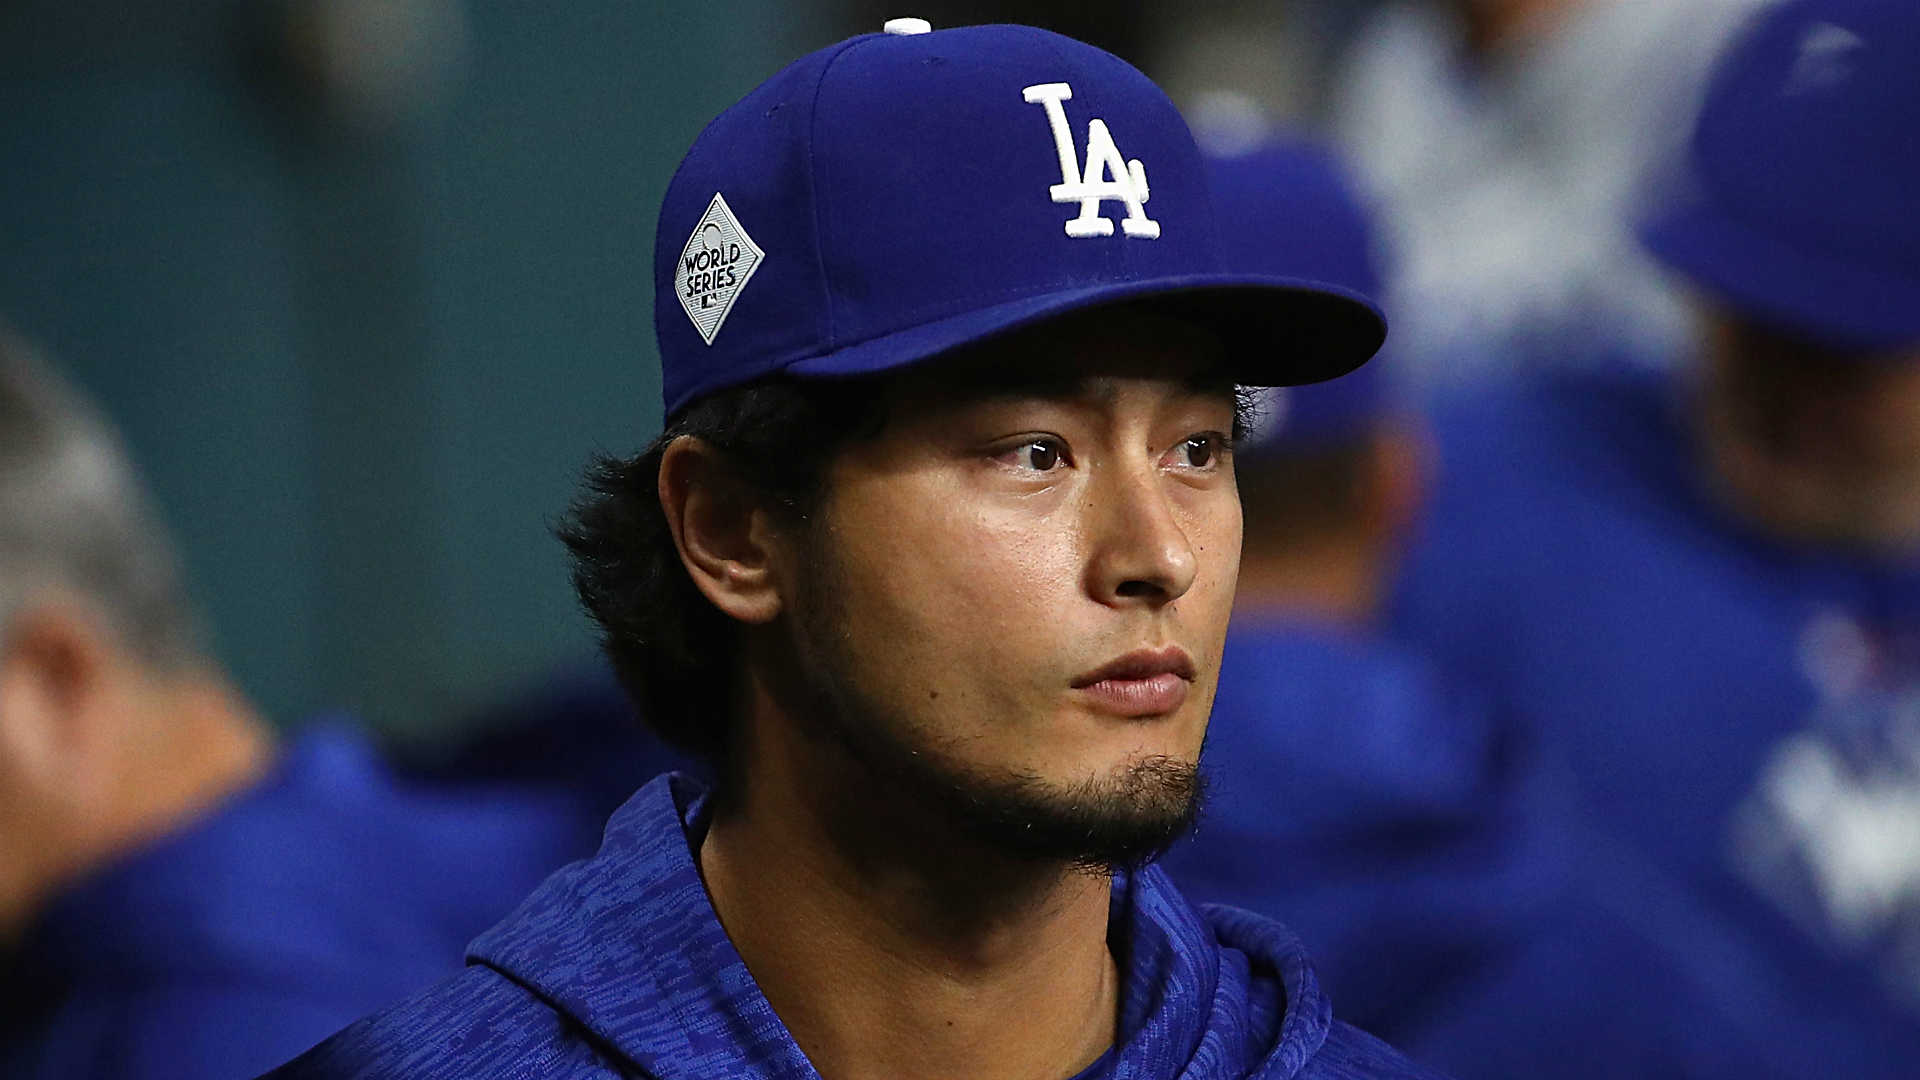 Cubs Sign Yu Darvish To Six-Year, $126M Contract